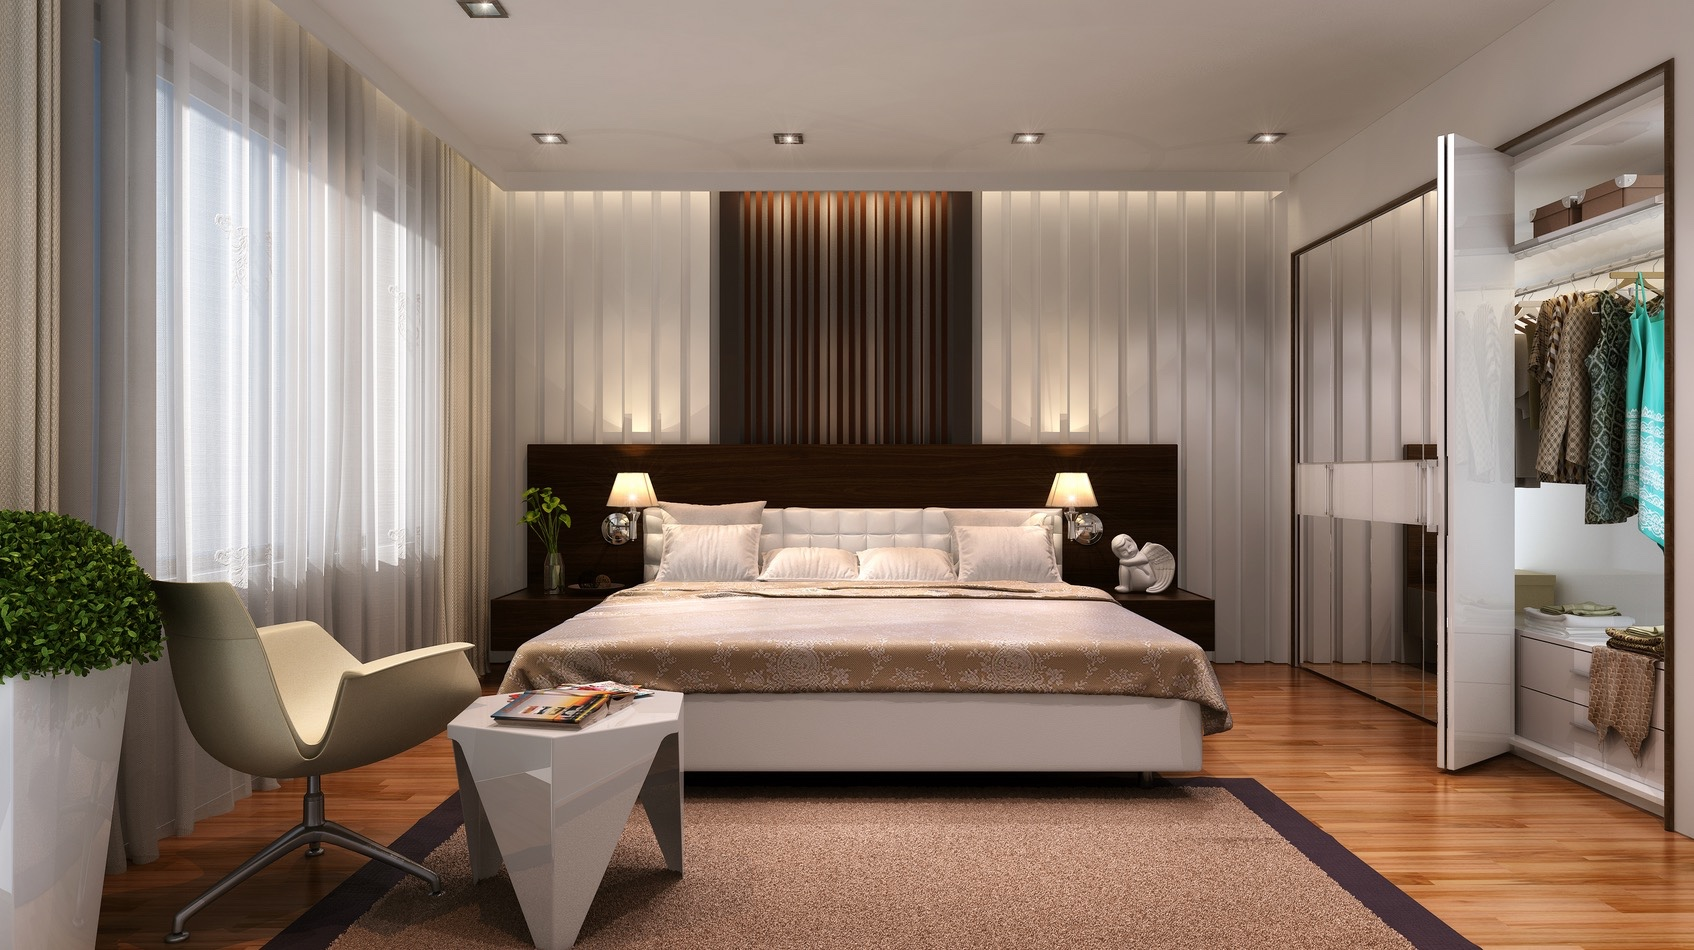 Designer Bedroom Ideas 21 Cool Bedrooms For Clean And Simple Design Inspiration